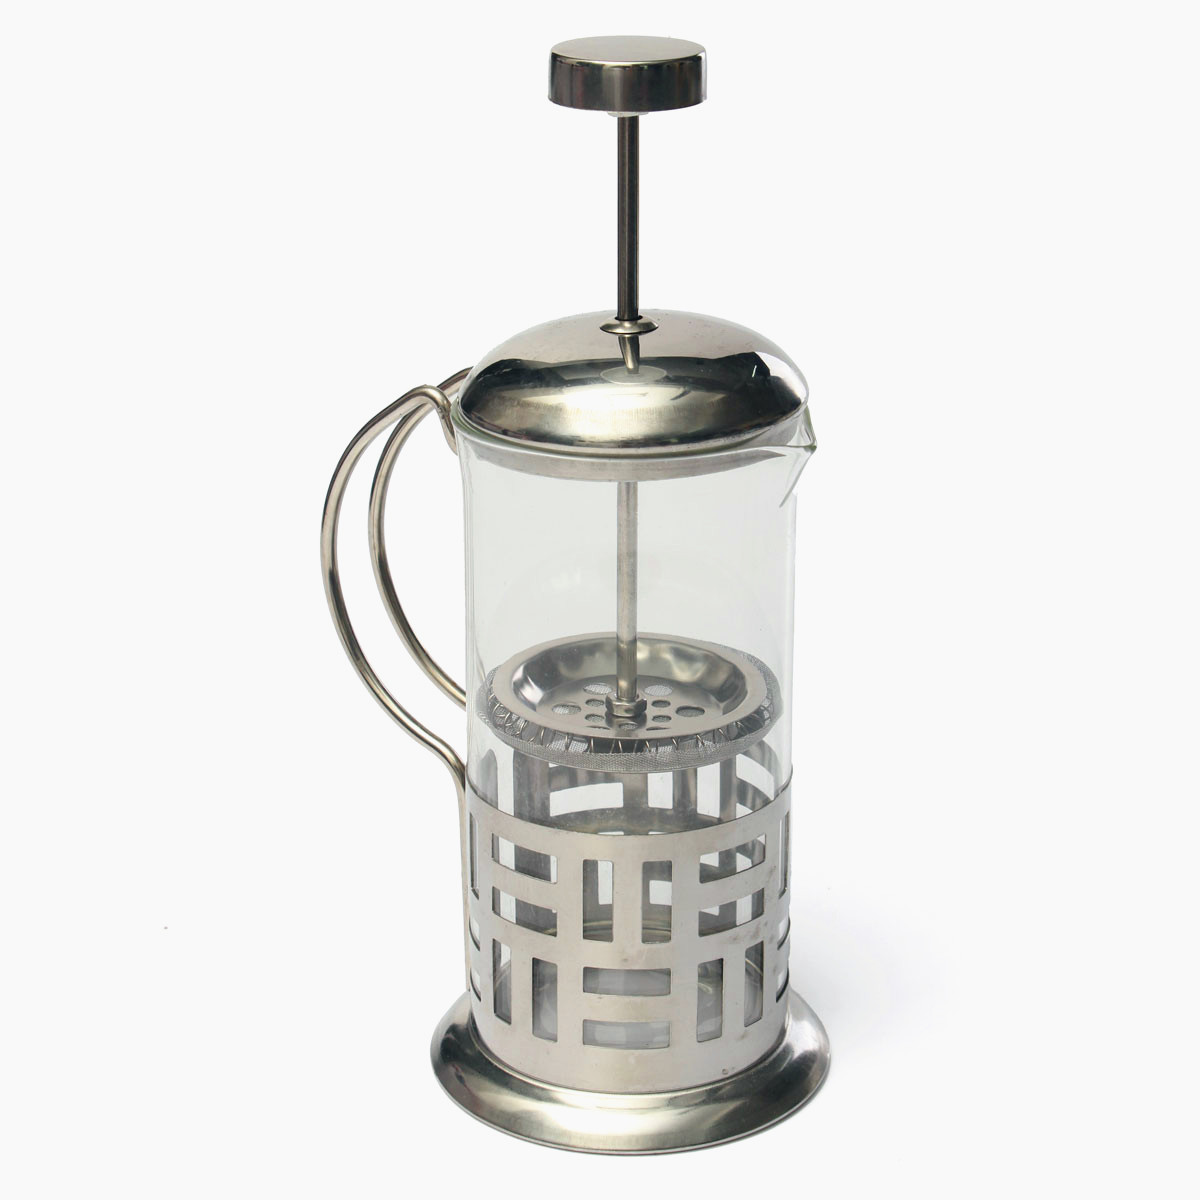 Stainless Steel French Press Coffee Cup Tea Maker Cafetiere Filter Press 350ml Lazada Malaysia